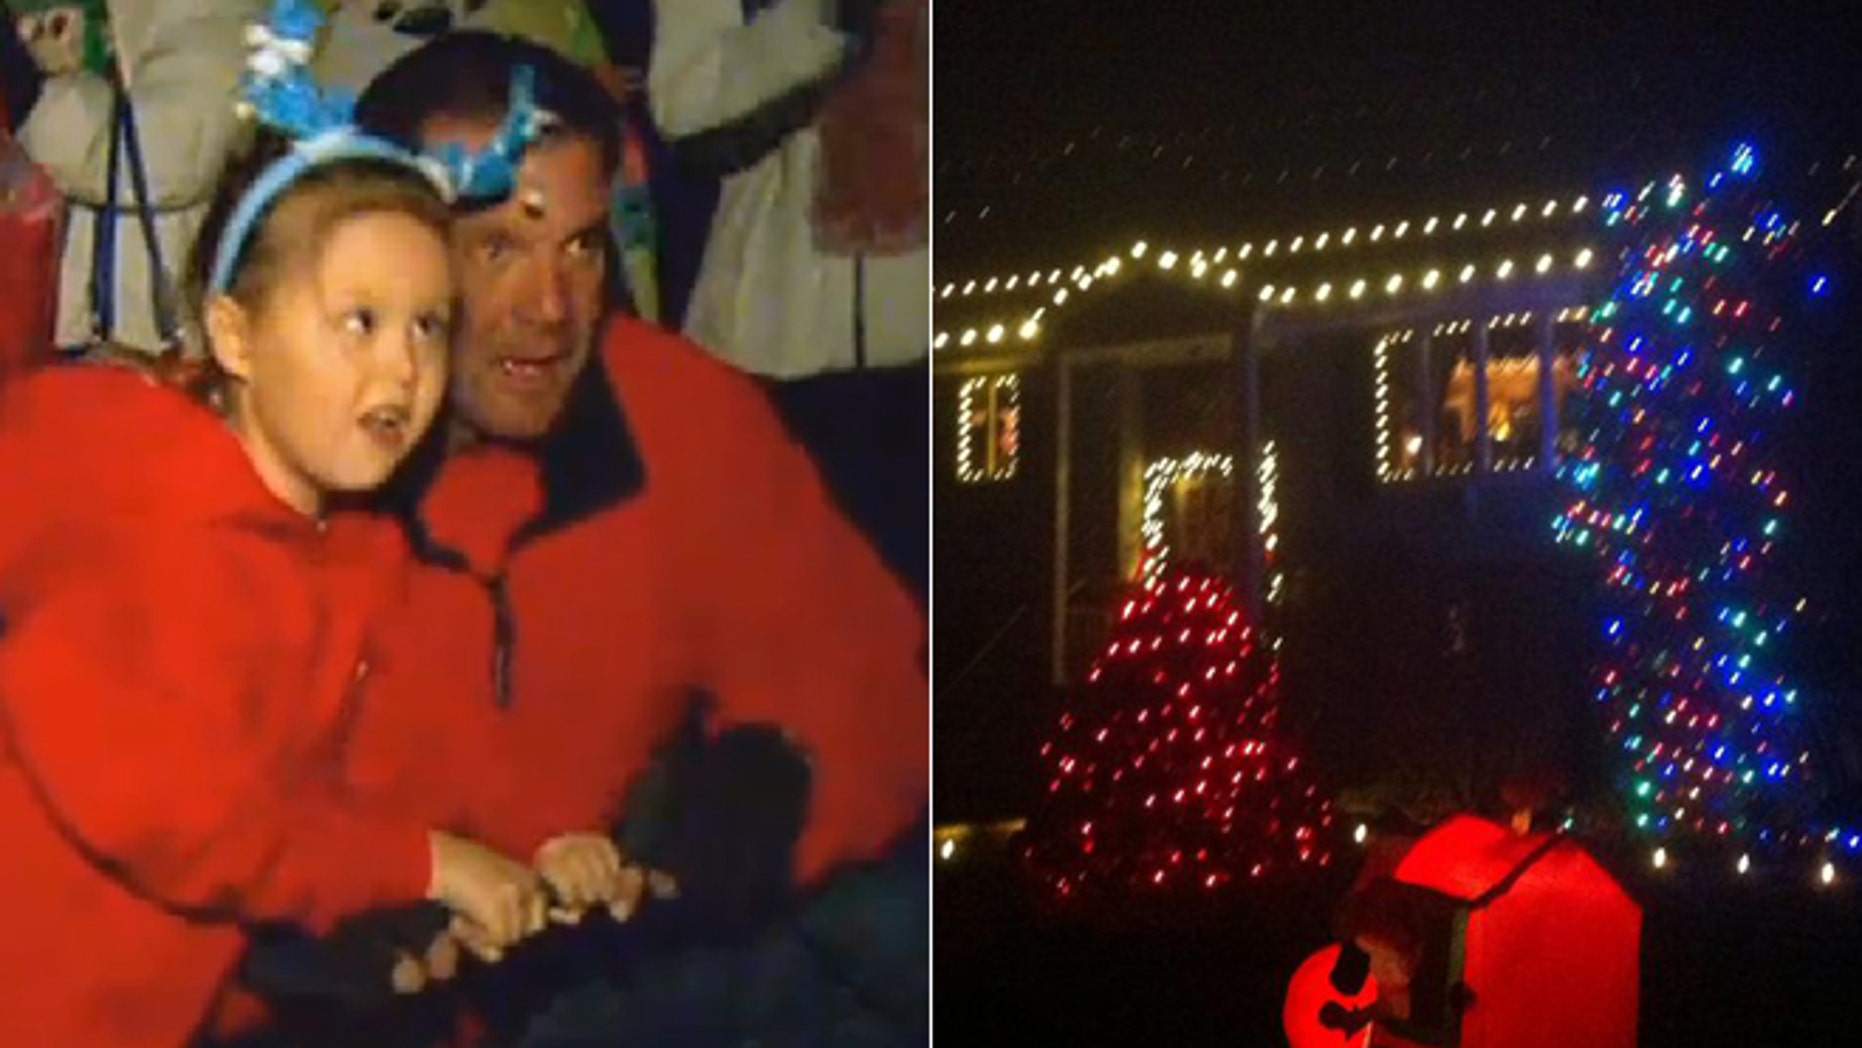 Left, Lily gets ready to see her family's home lit up in Christmas lights. Right, the final product.